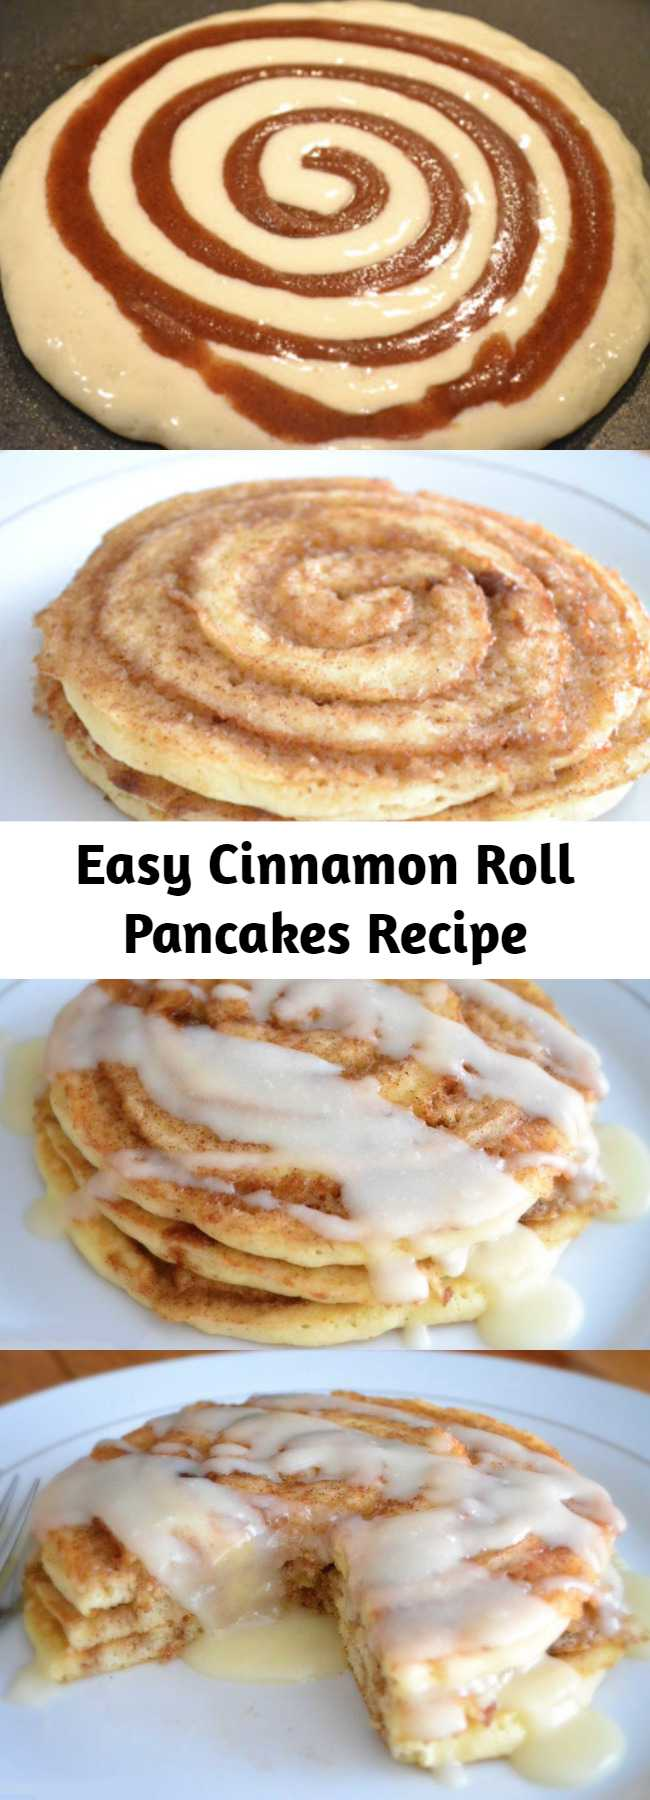 Easy Cinnamon Roll Pancakes Recipe - These Cinnamon Roll Pancakes will be the star of the show at breakfast time! Swirls of cinnamon through out and topped with cream cheese glaze!